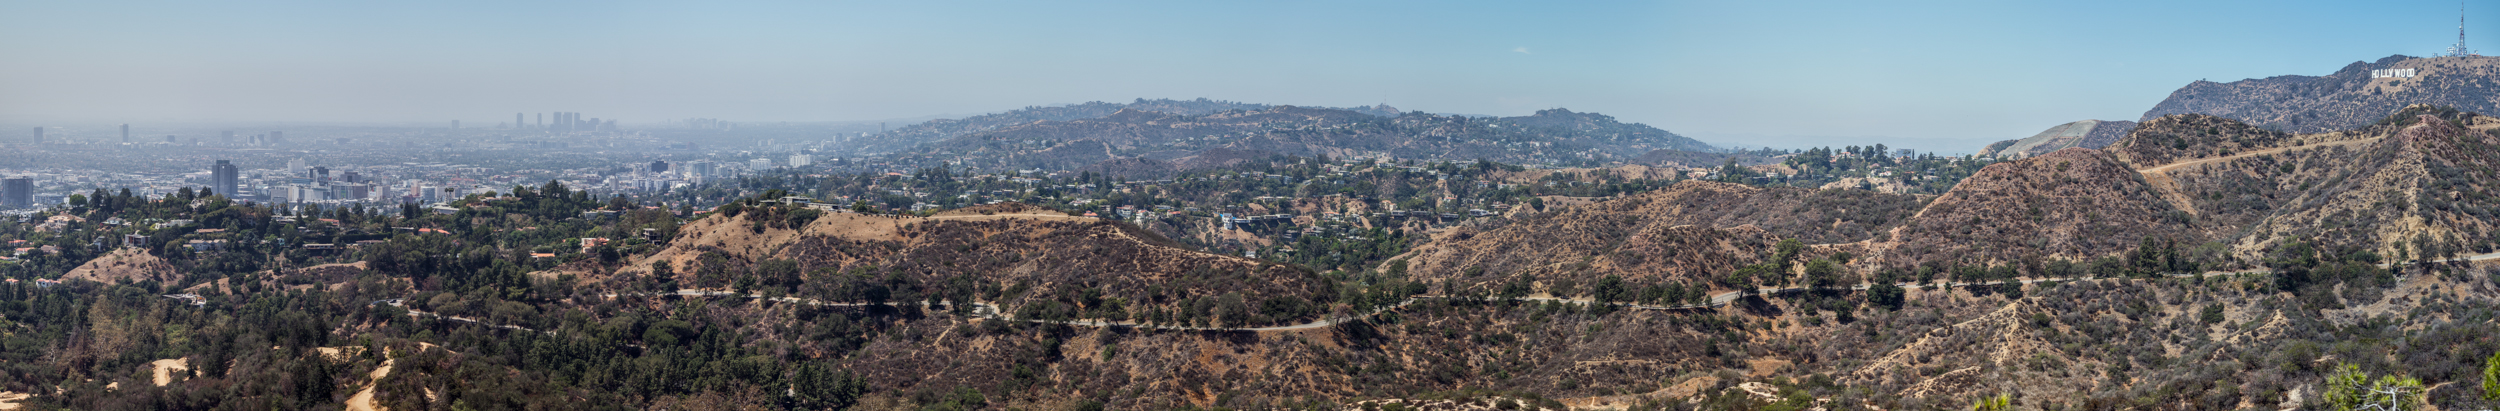 That's the Hollywood sign at the very top right of the image.